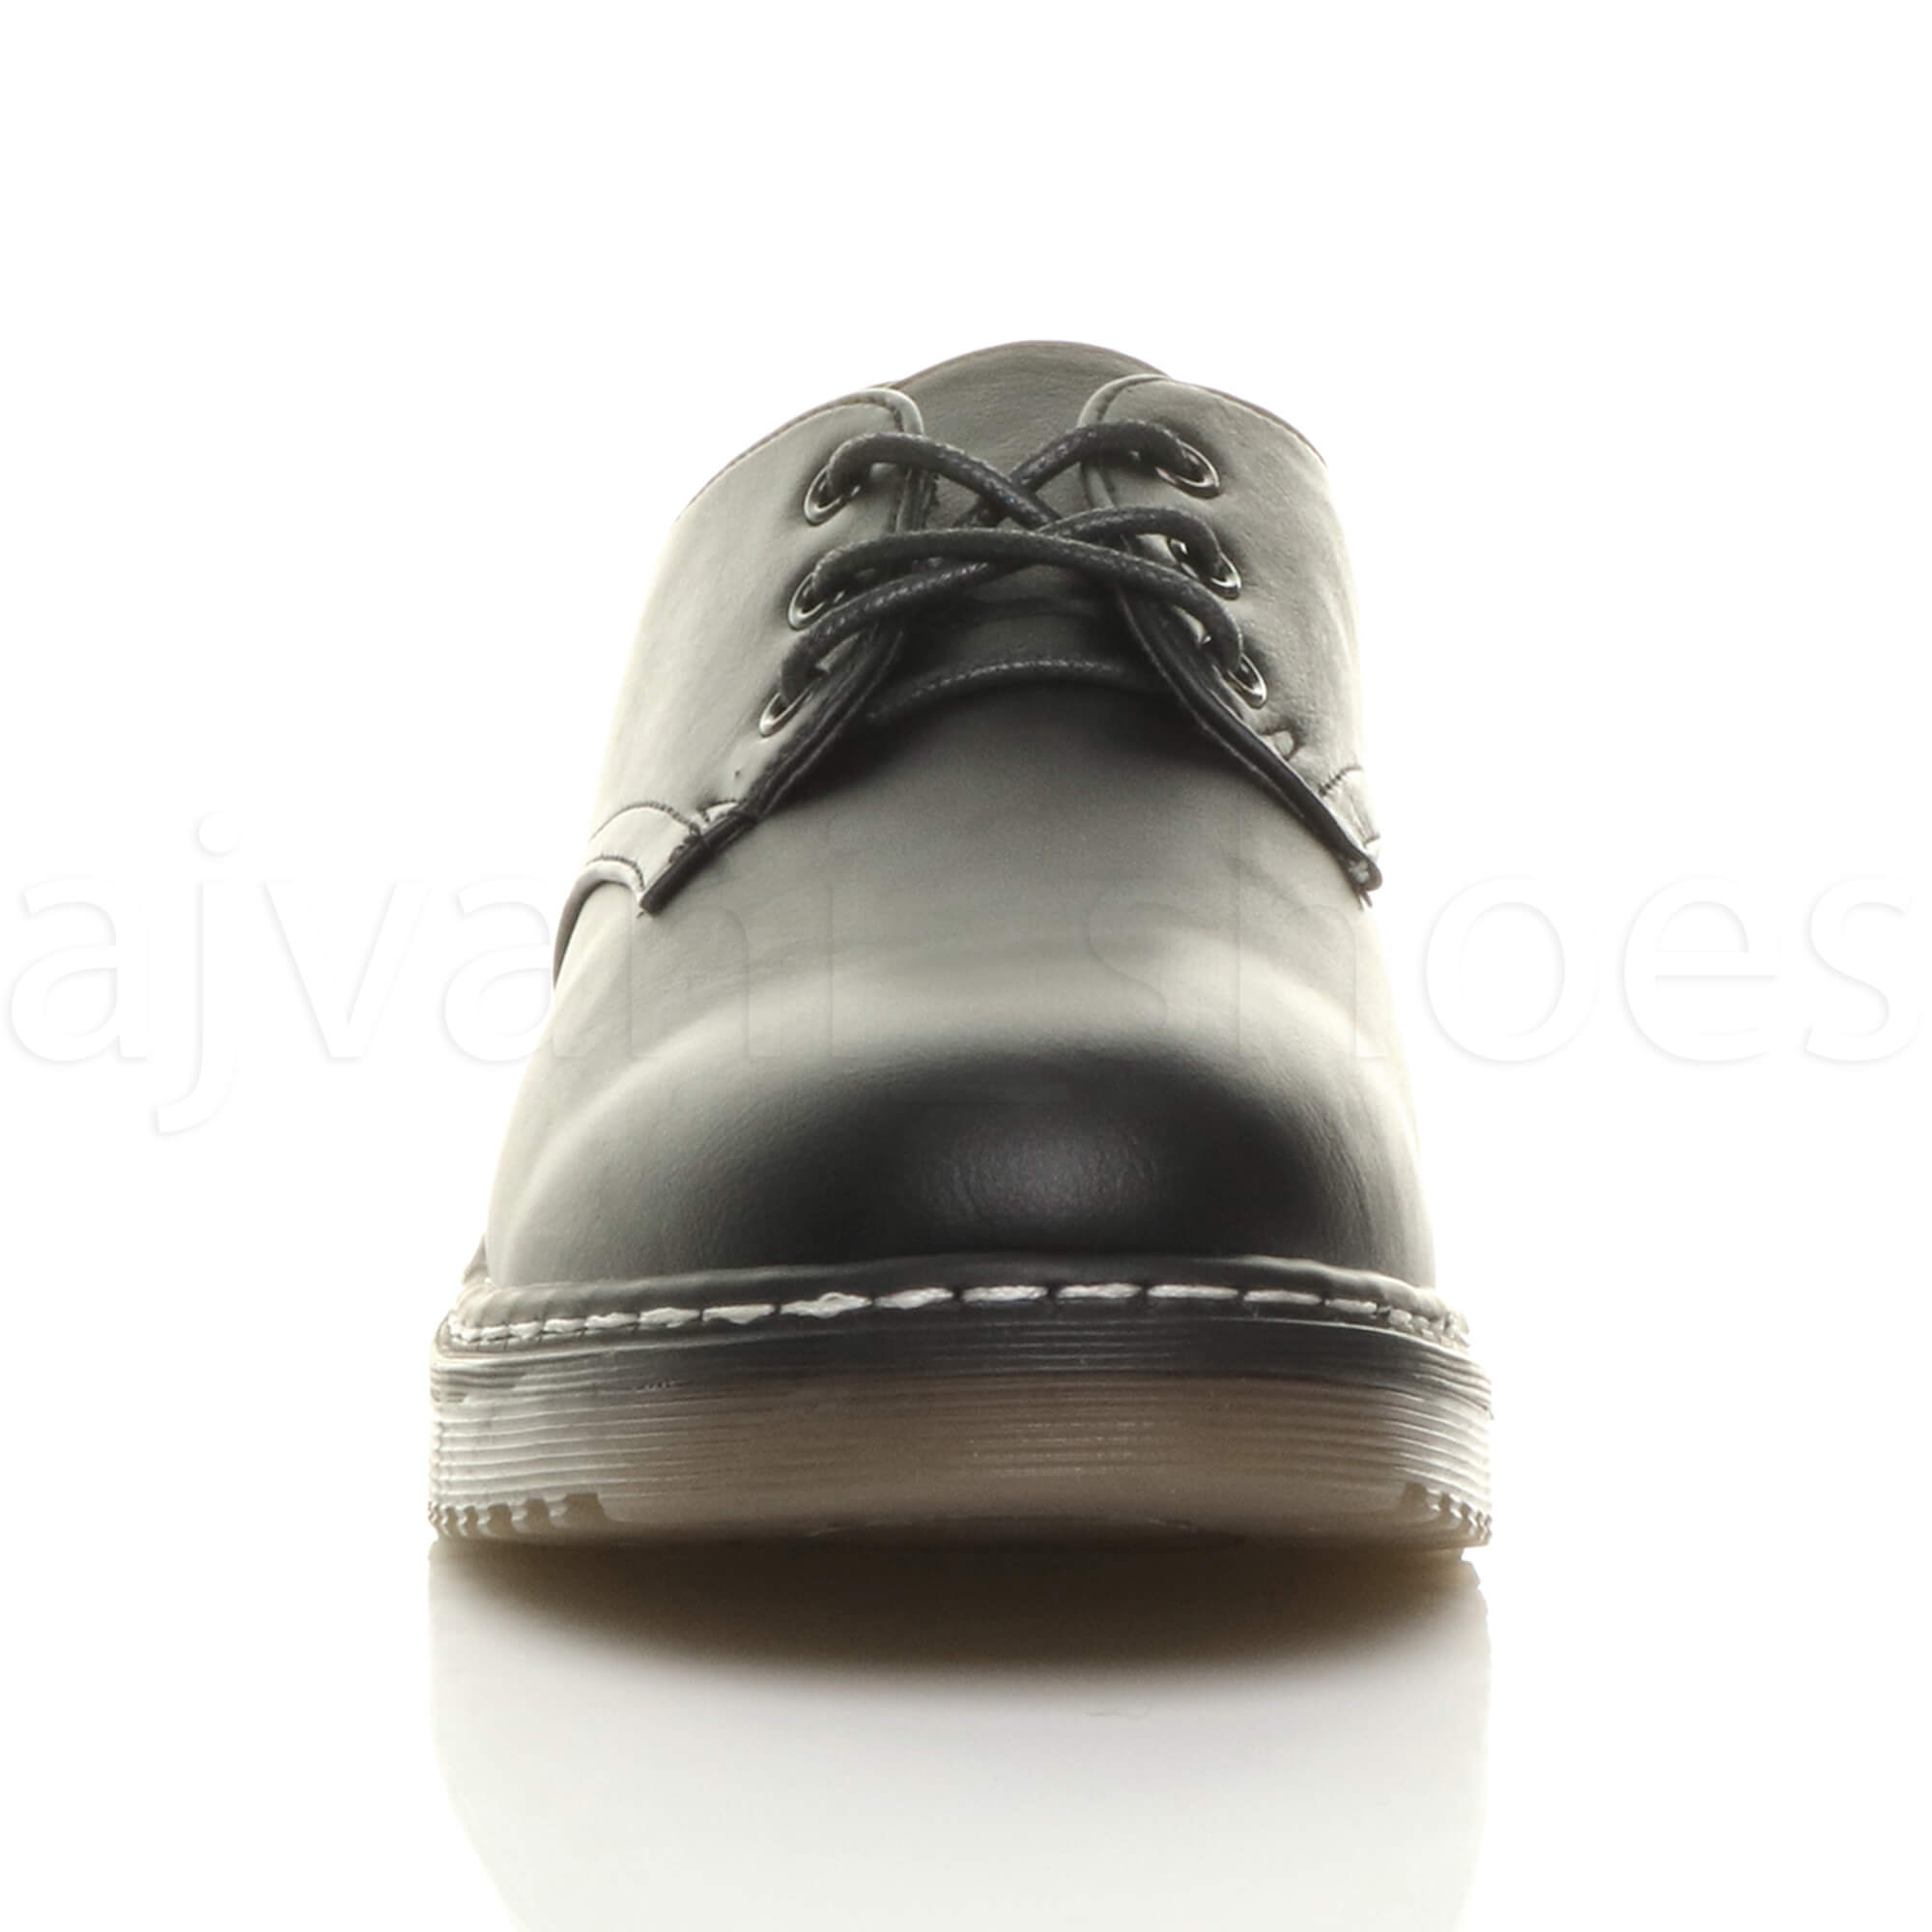 WOMENS-LADIES-LOW-HEEL-CHUNKY-MILITARY-GOTH-GRUNGE-90s-LACE-UP-OXFORD-SHOES-SIZE thumbnail 7